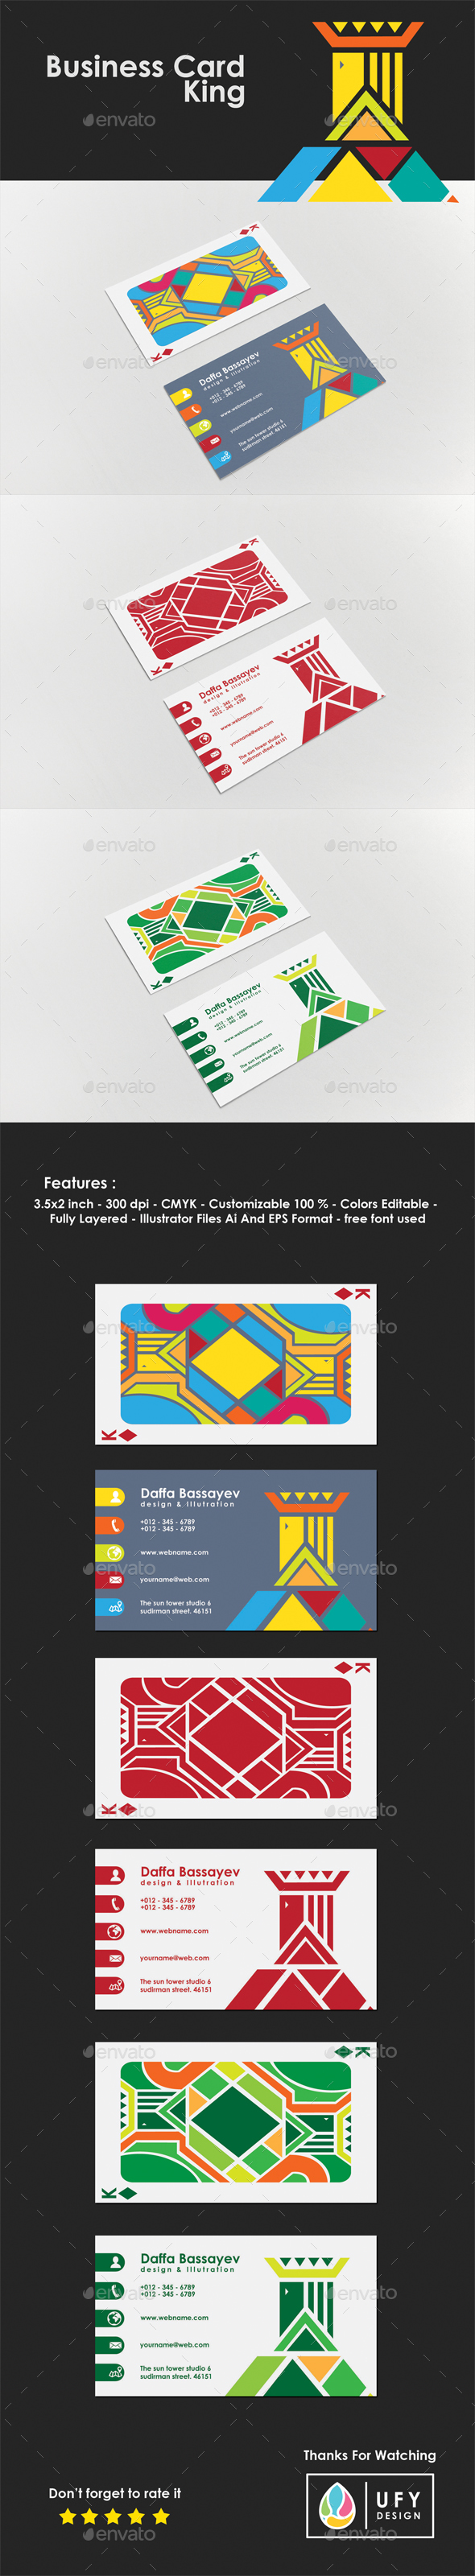 Business Card - King - Business Cards Print Templates